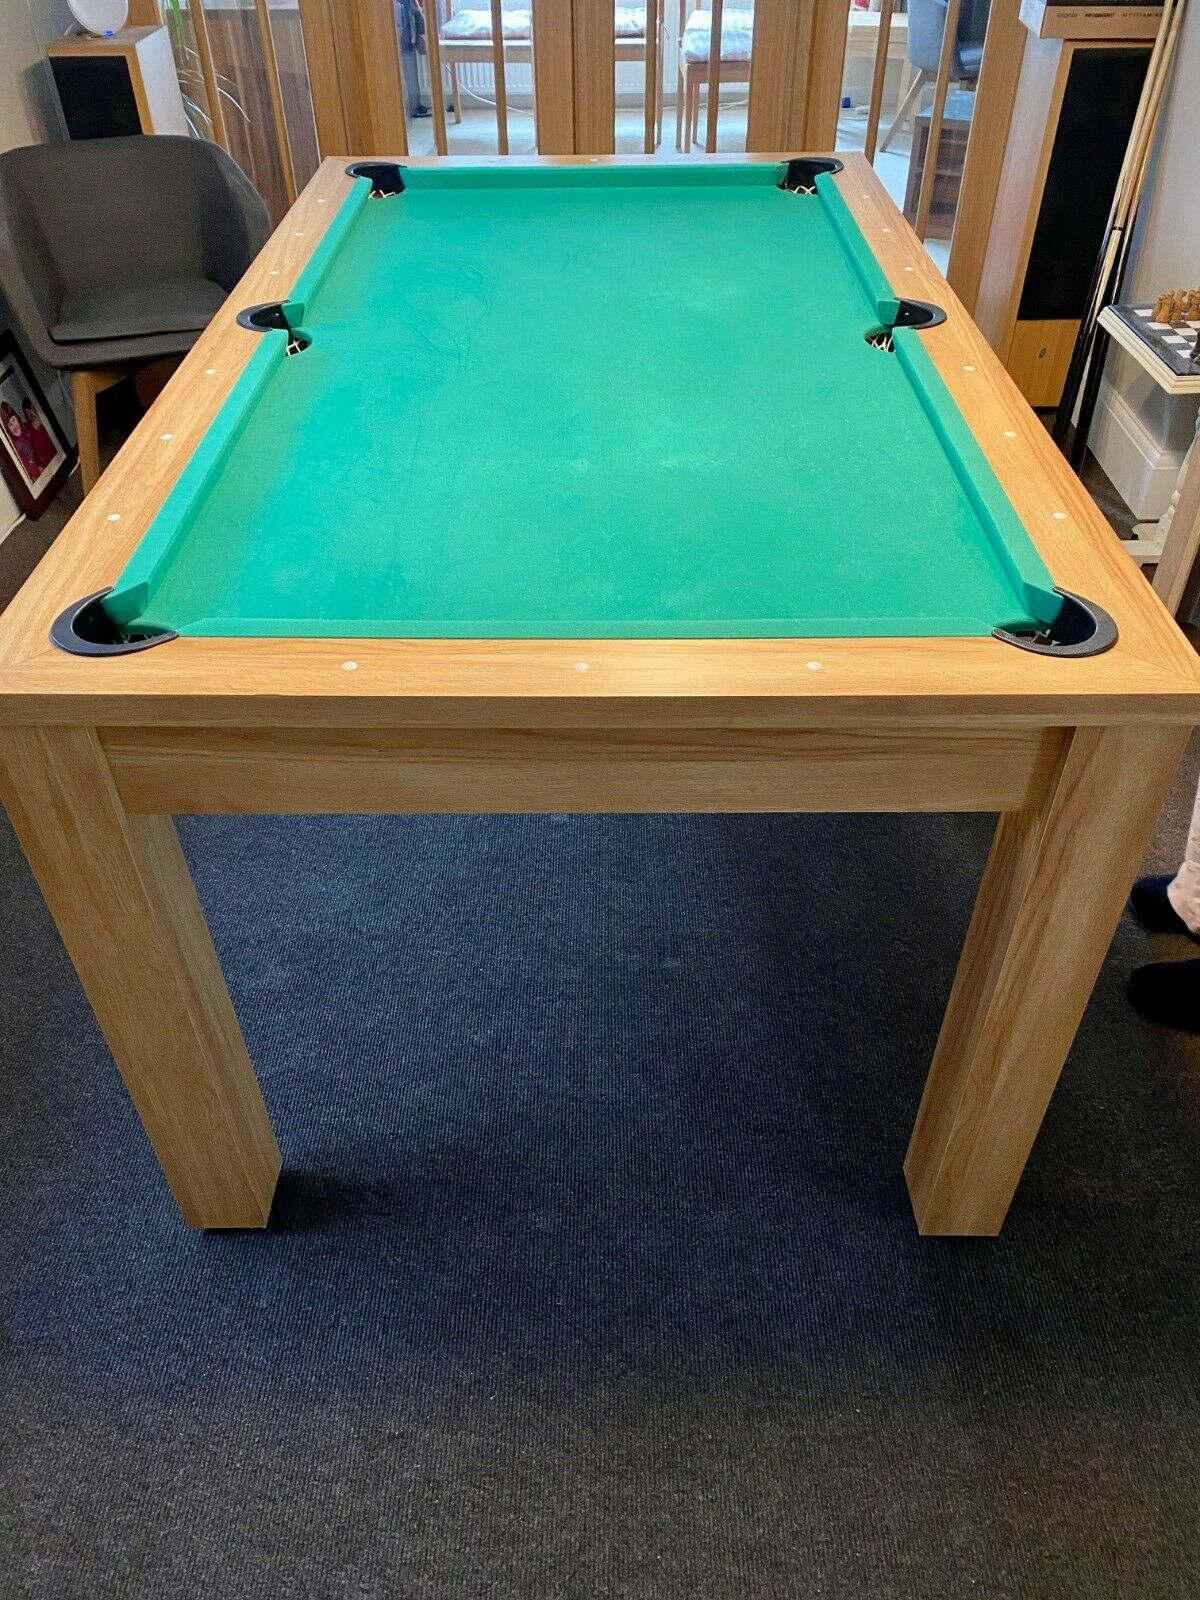 6ft Pool Table Tennis Table